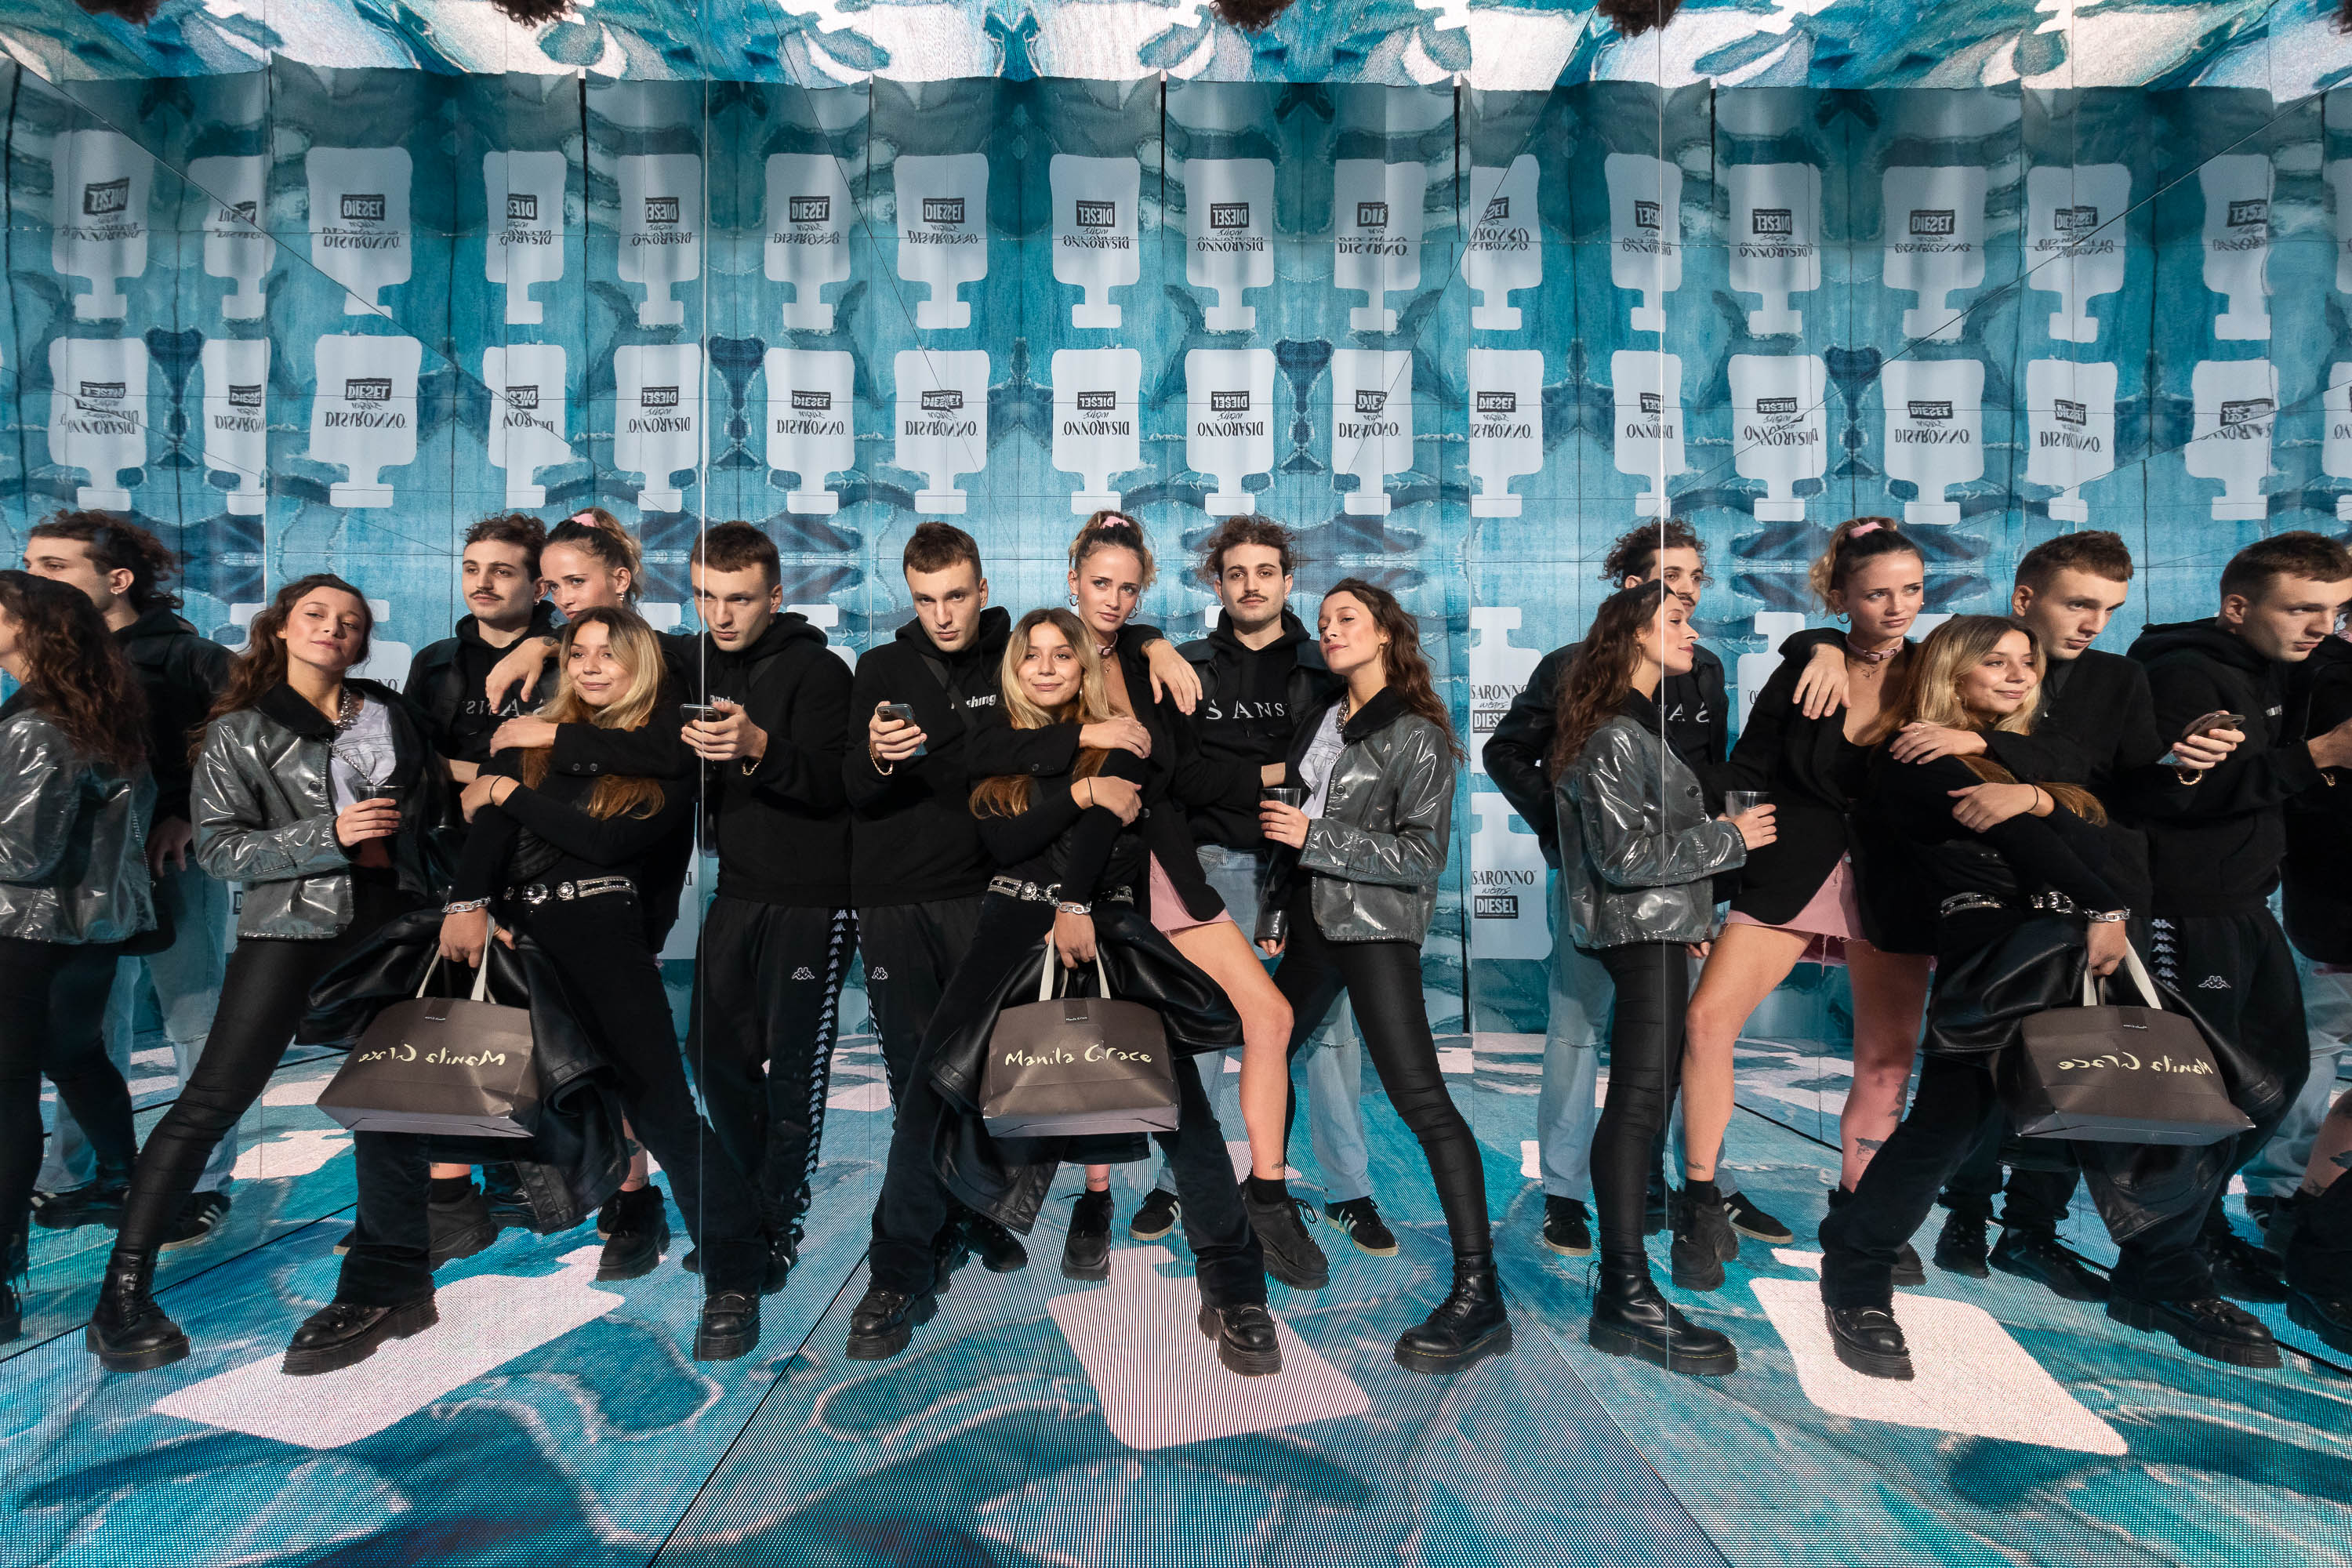 "For the launch event of the new collaboration ""Disaronno Wears Diesel"" we have created a Video Infinity Room to give guests an innovative and fun welcome experience and an effective and high-quality photographic image."